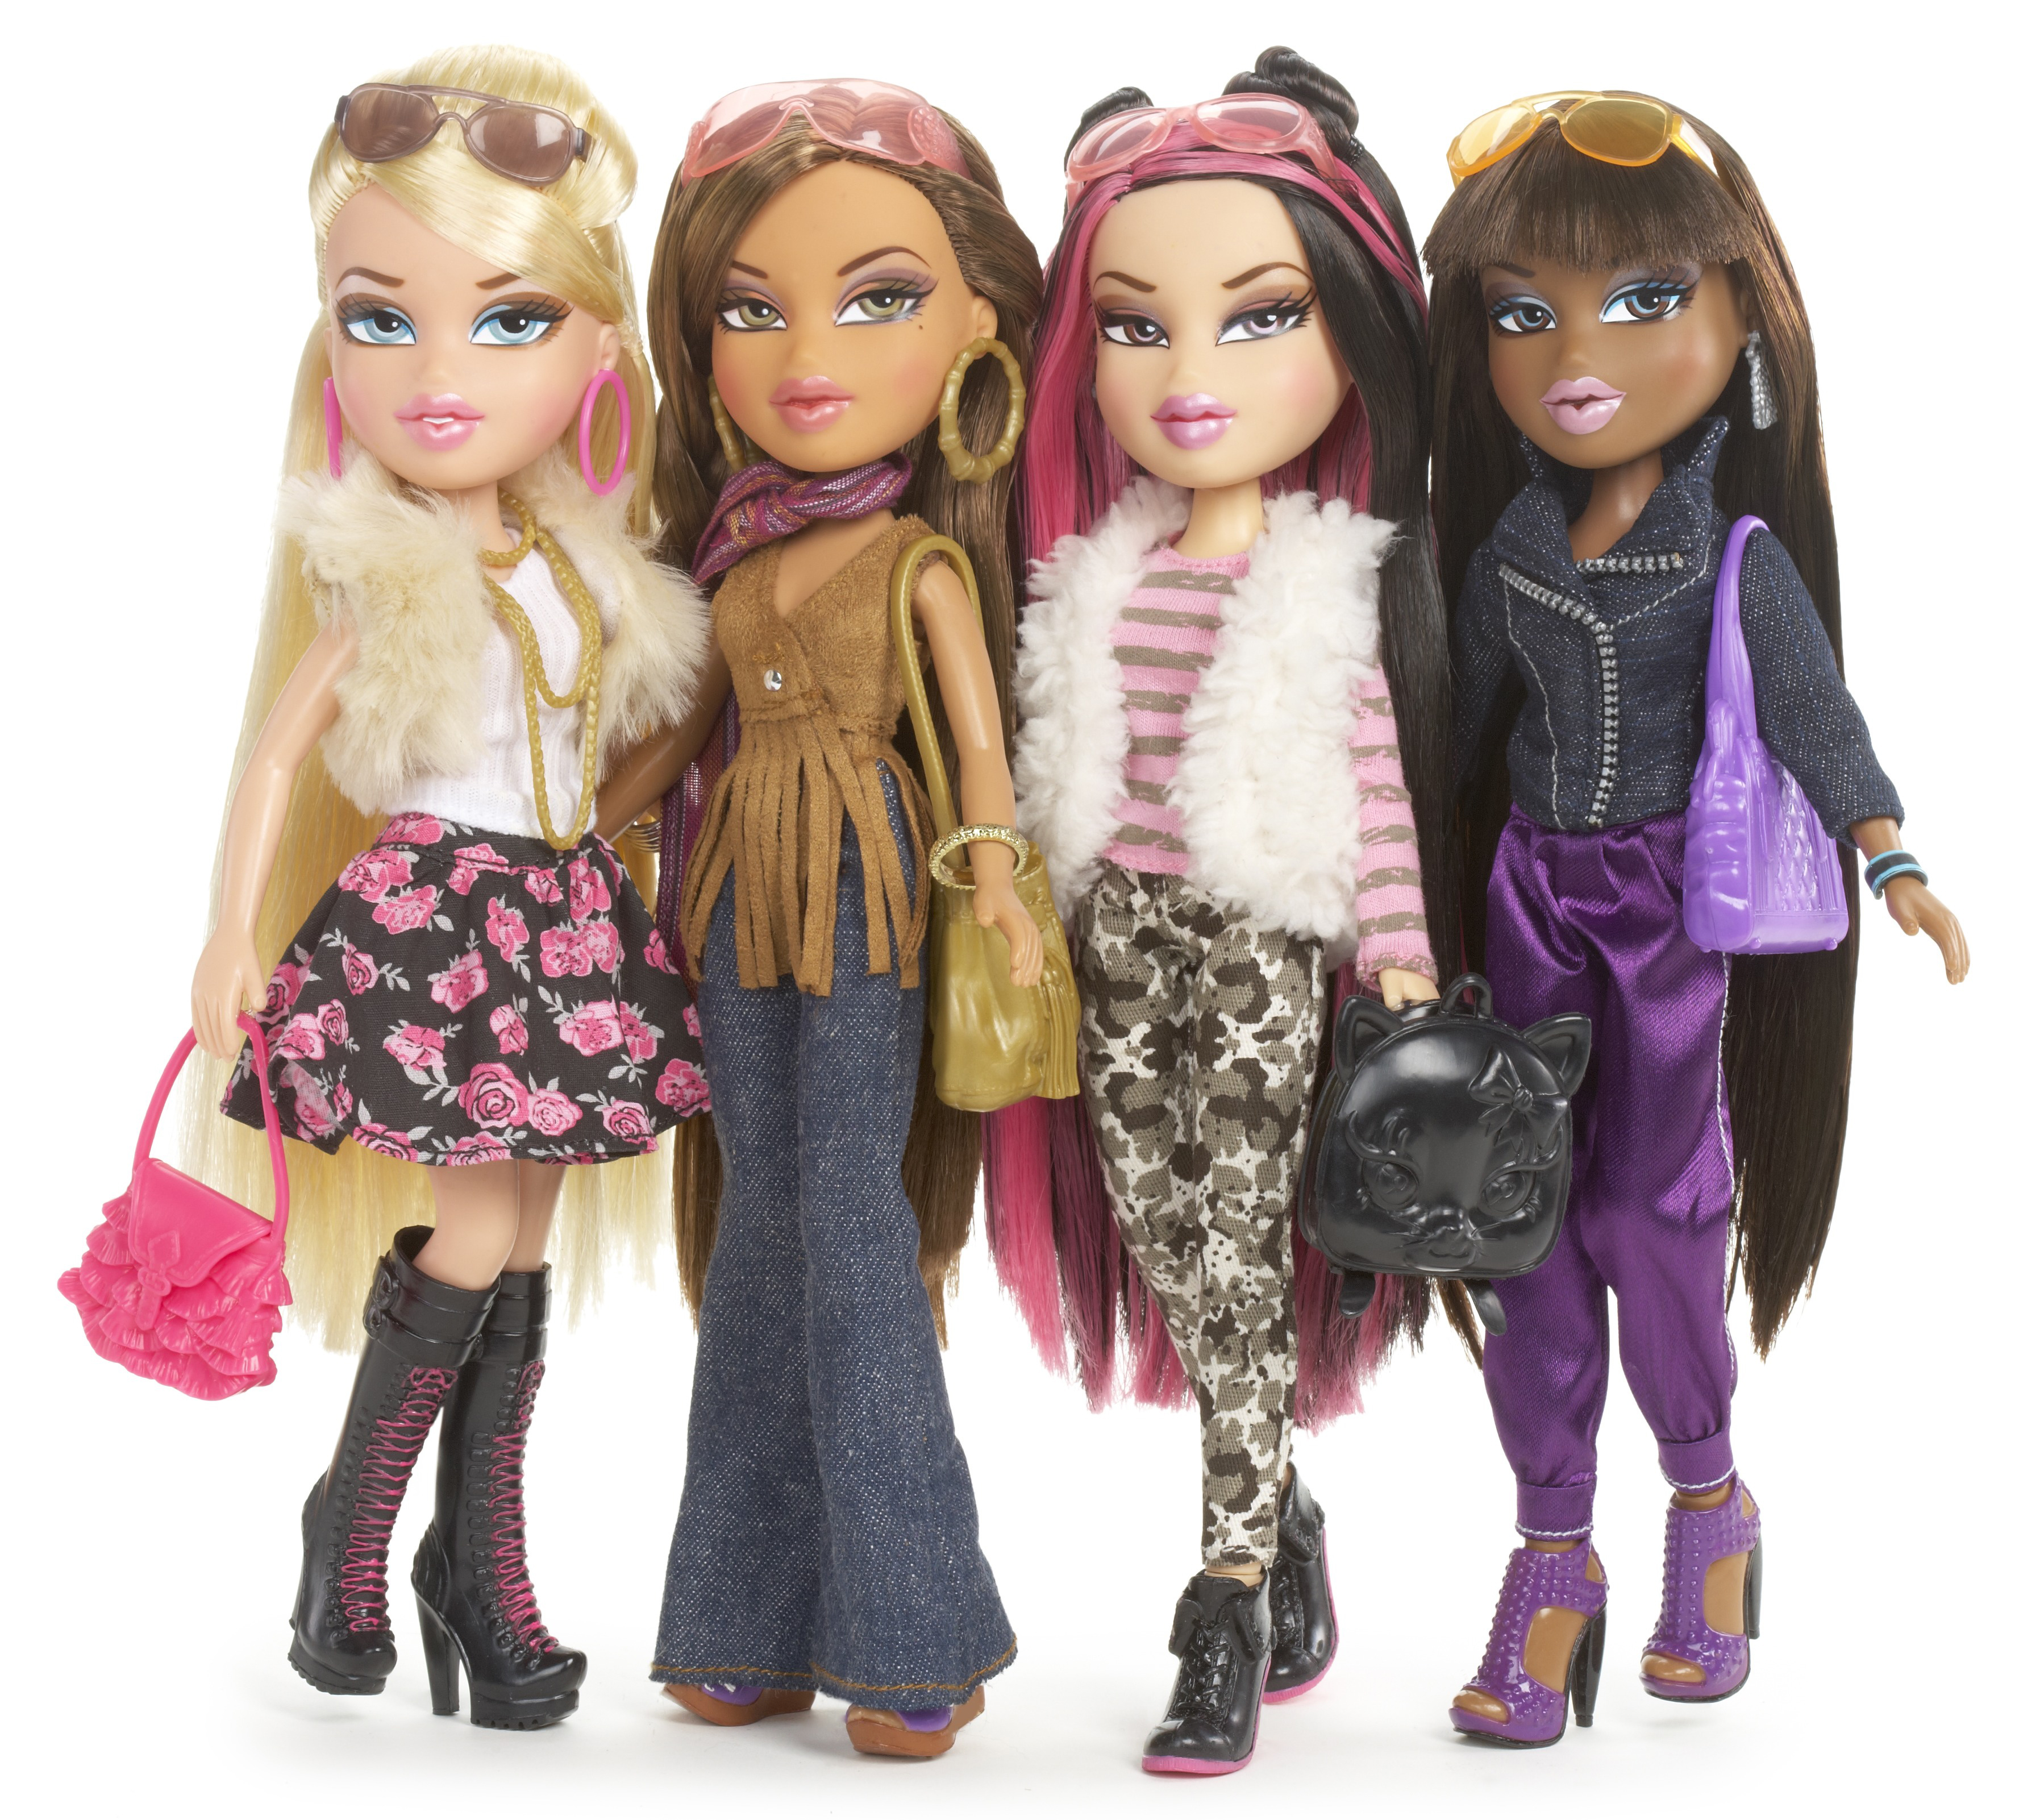 Bratz Boutique Sparks Creative Play My Little Review Corner